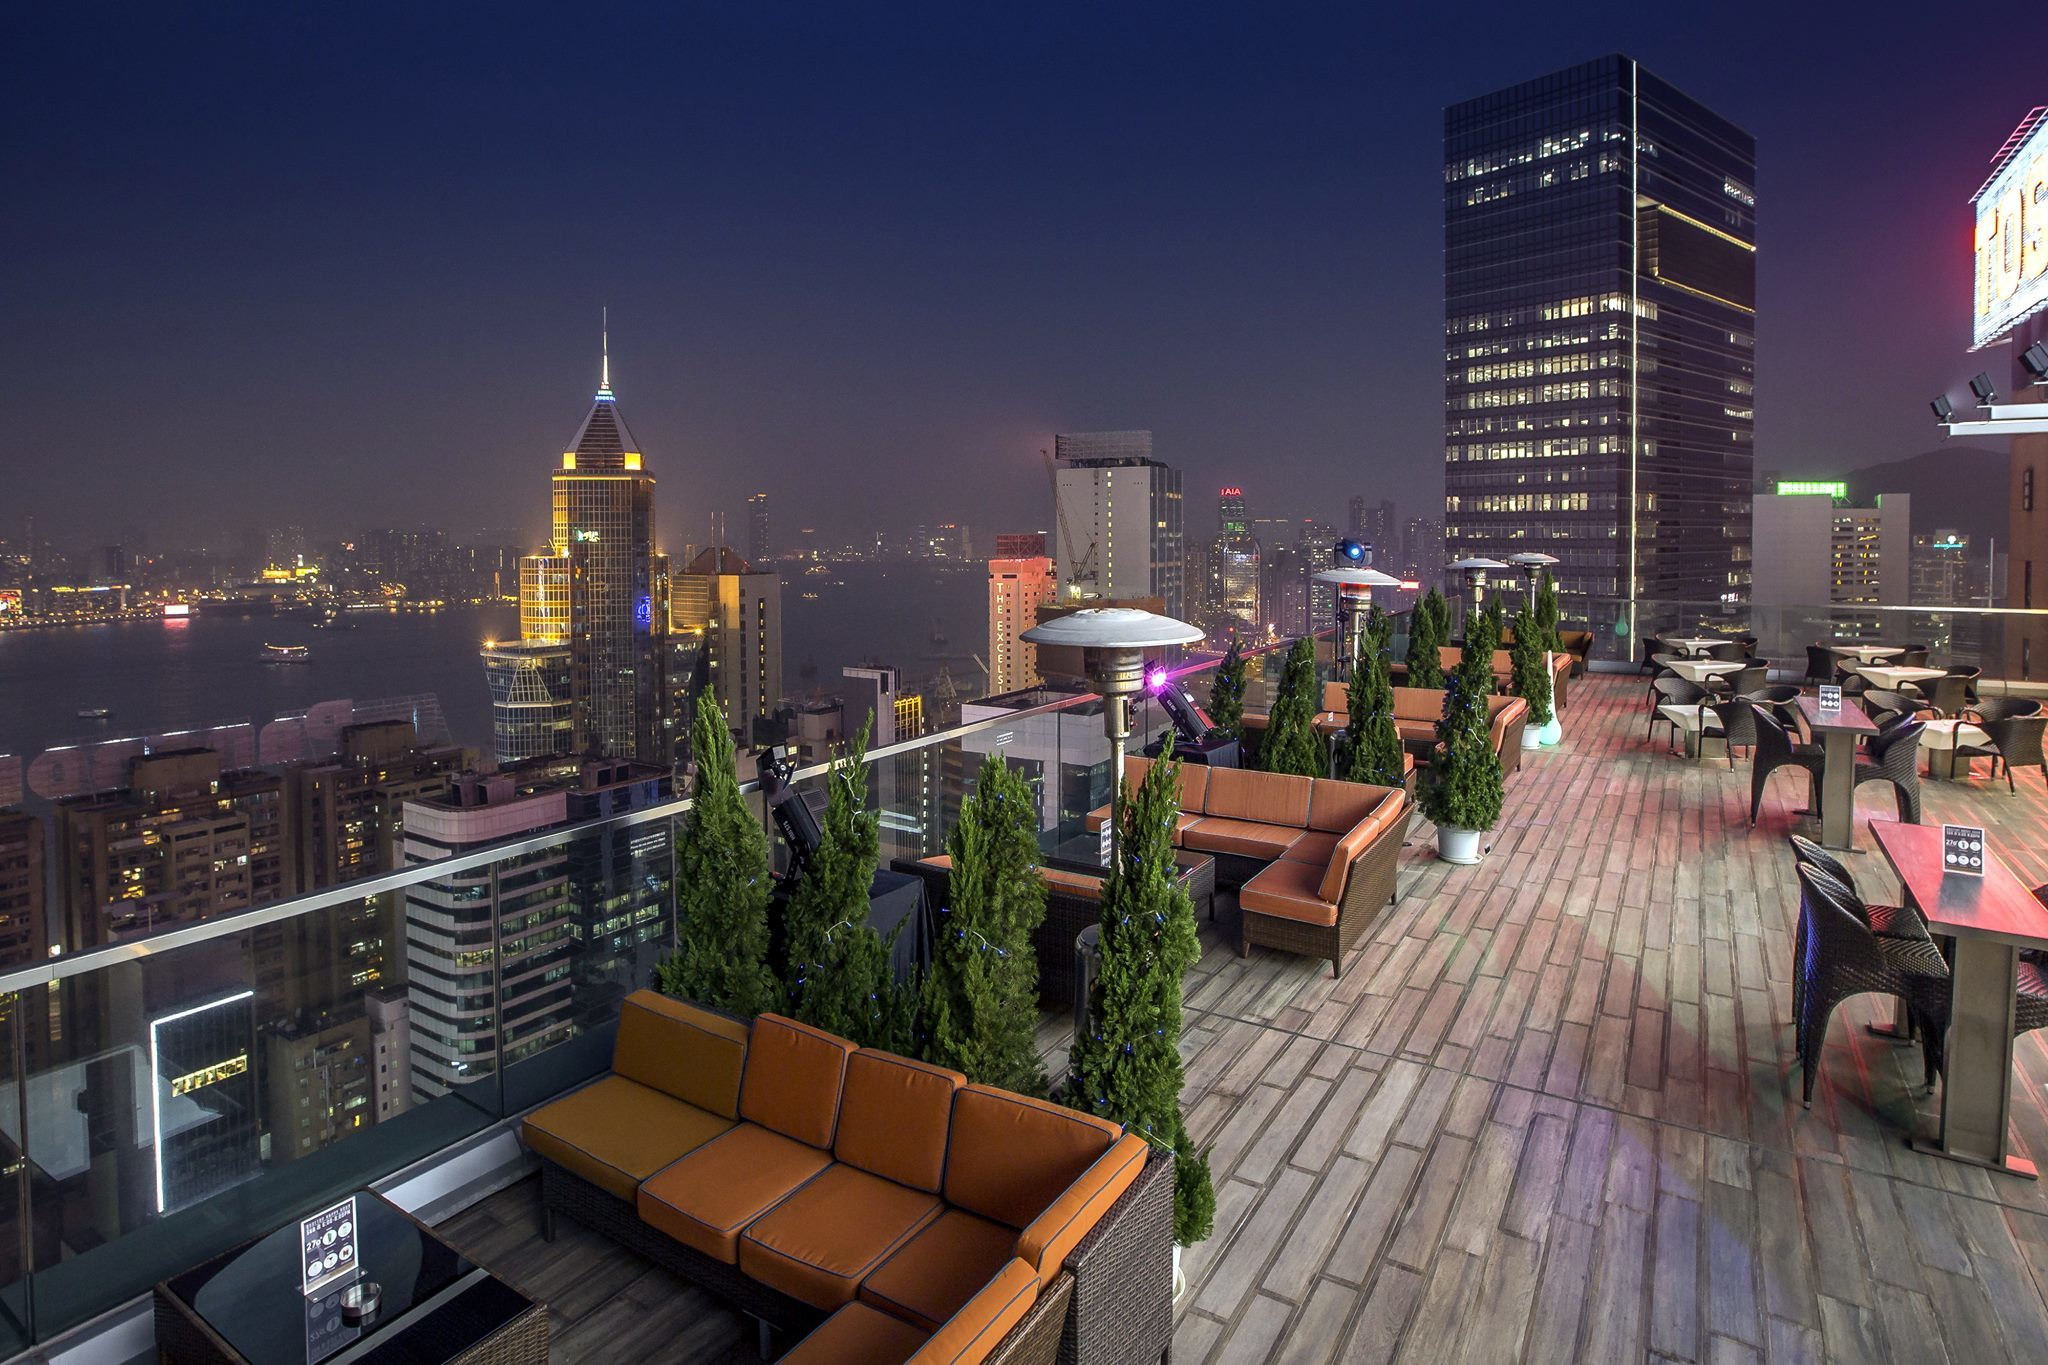 270 Degrees Rooftop Bar by Harlan Goldstein